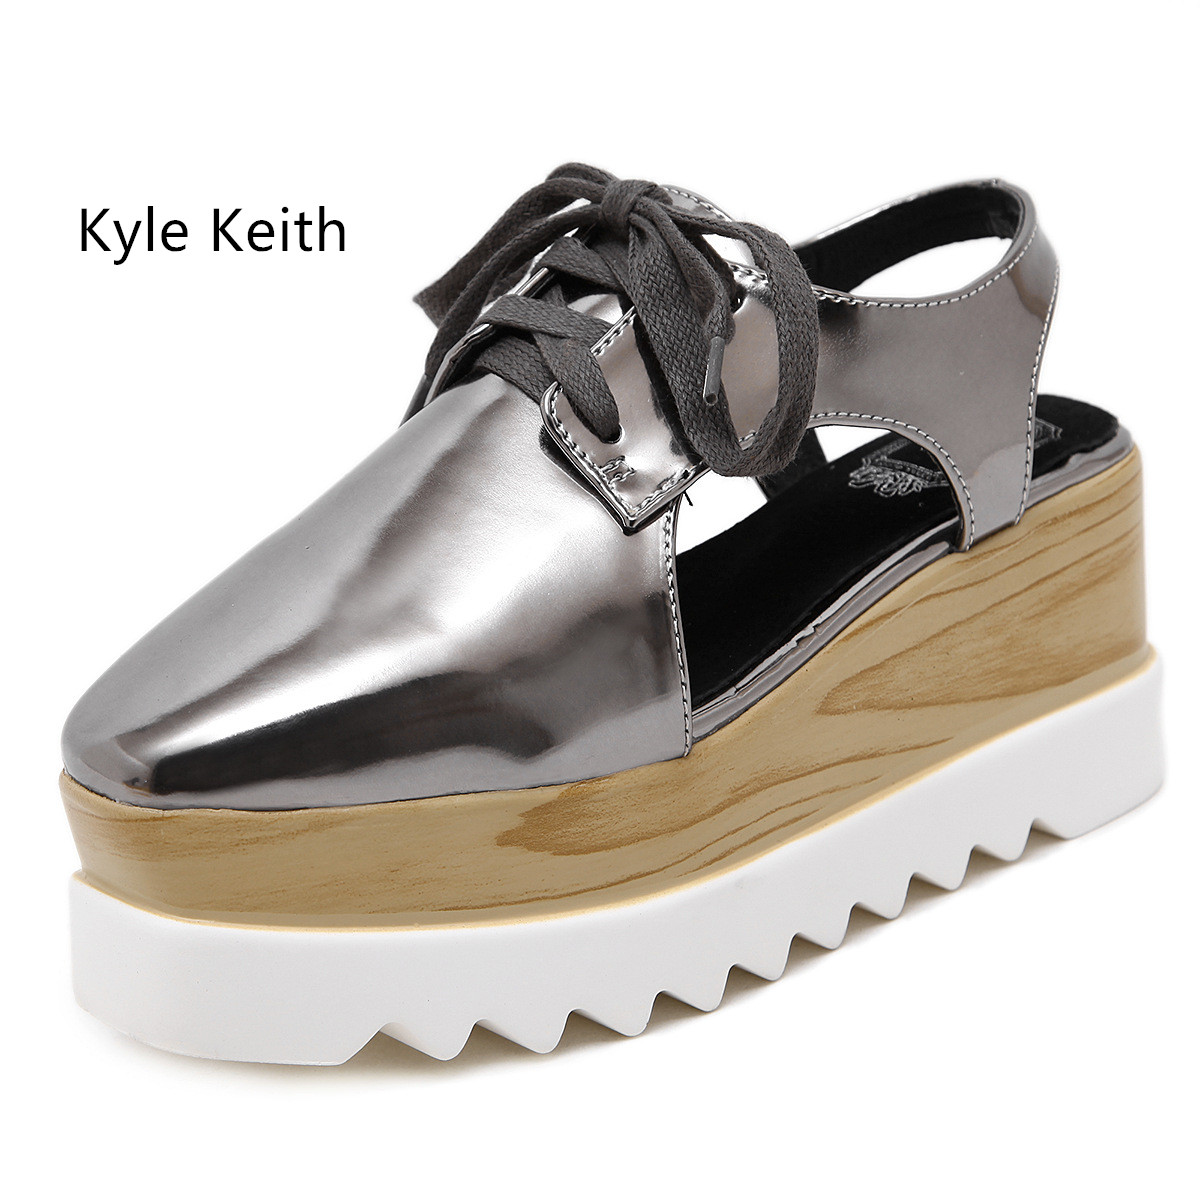 Kyle Keith Spring and Summer Luxury Height Increasing Women Shoes Flat Platform Brand Fashion Womens Flats Shoes<br>